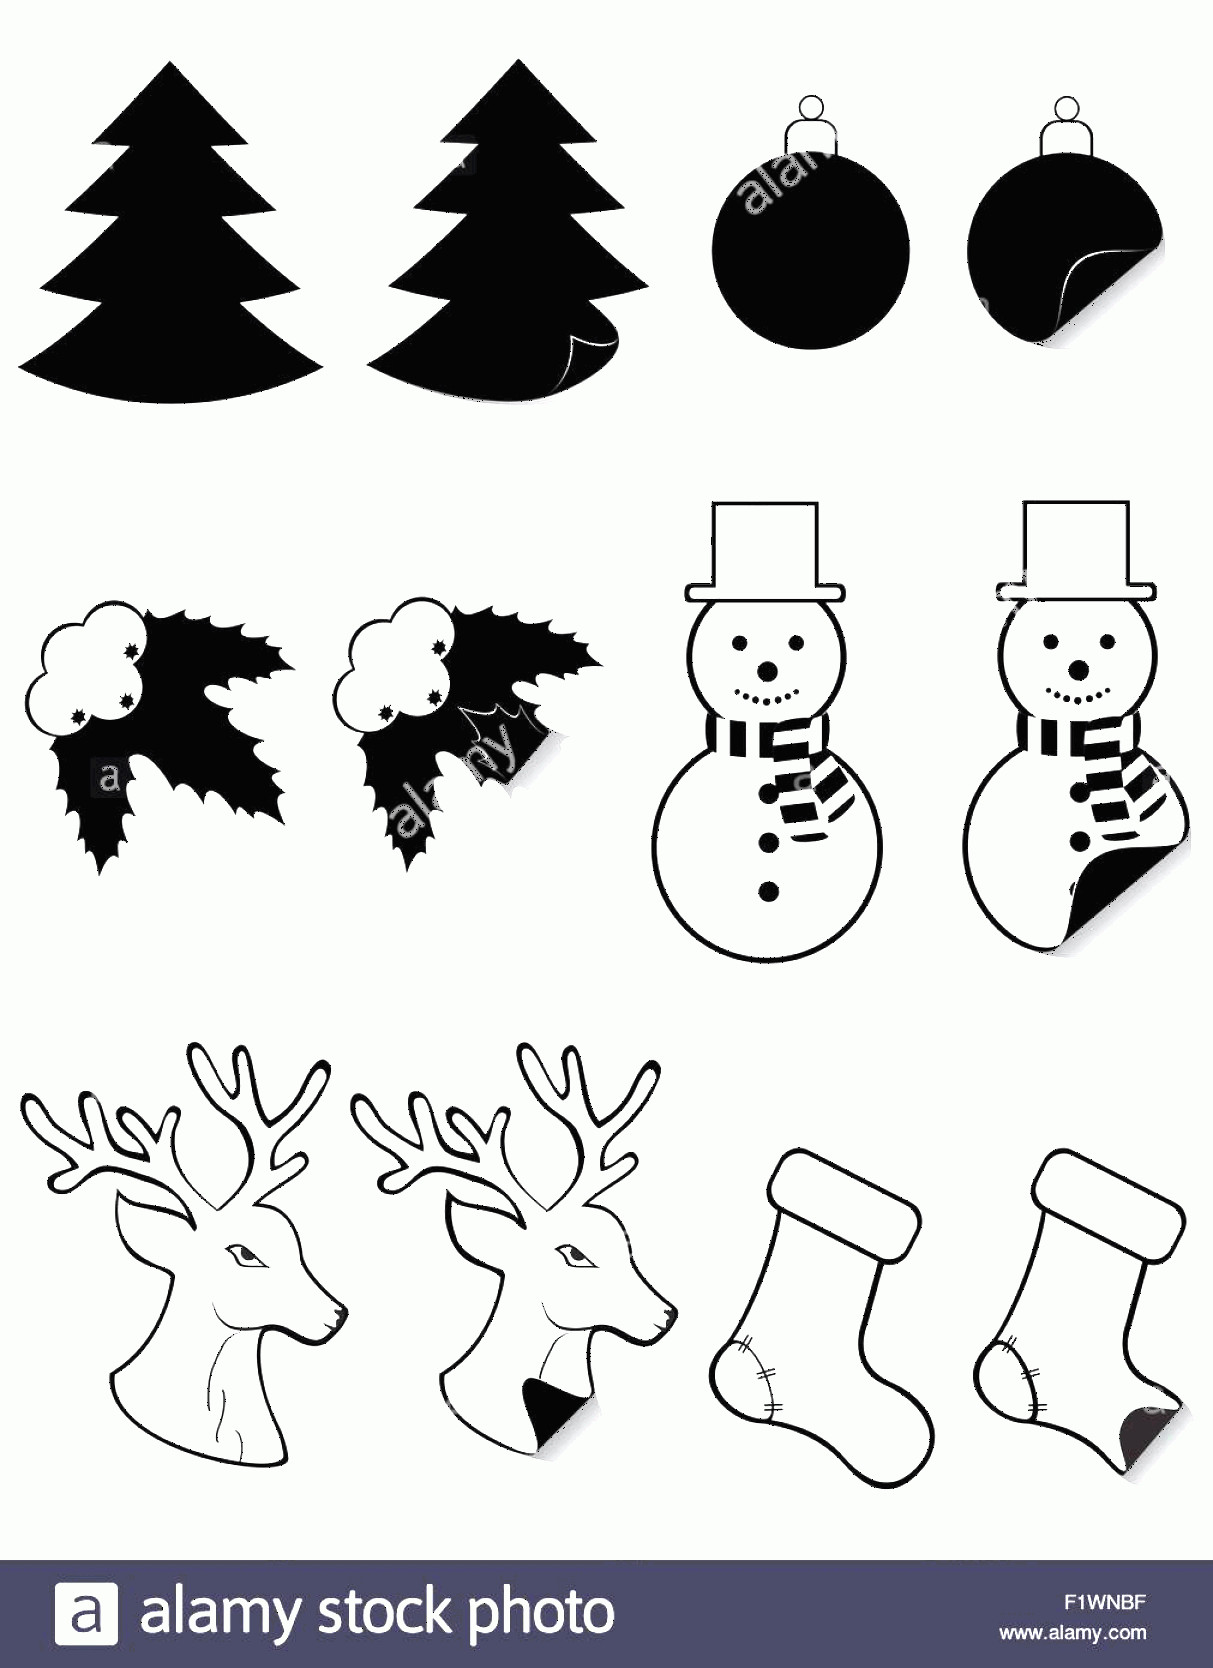 Vector Christmas Toppers: Stock Photo Icons Labels For Christmas And New Year Black Silhouette Vector Illustration